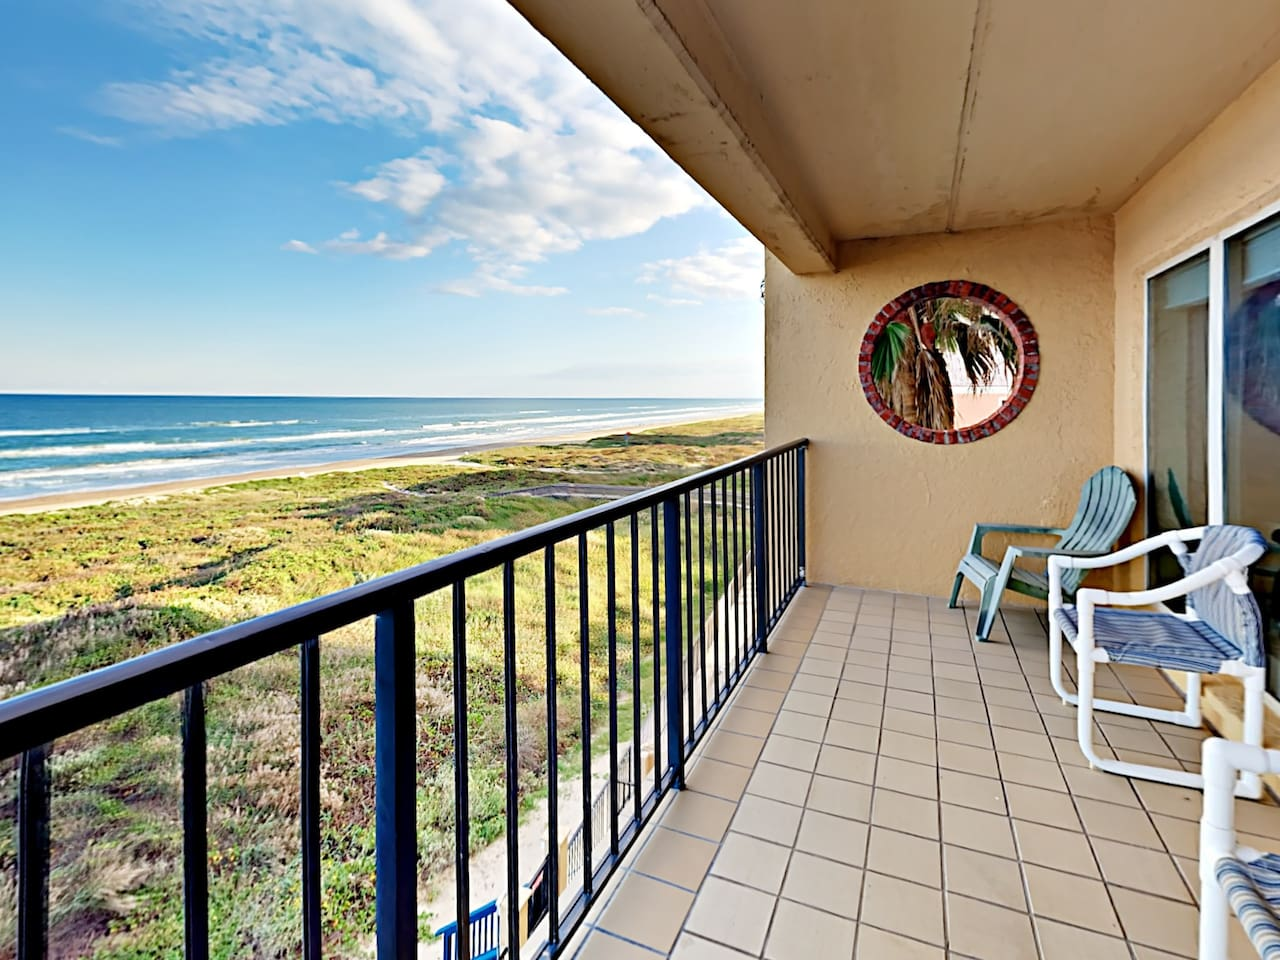 Welcome to South Padre Island! This oceanfront condo is professionally managed by TurnKey Vacation Rentals.